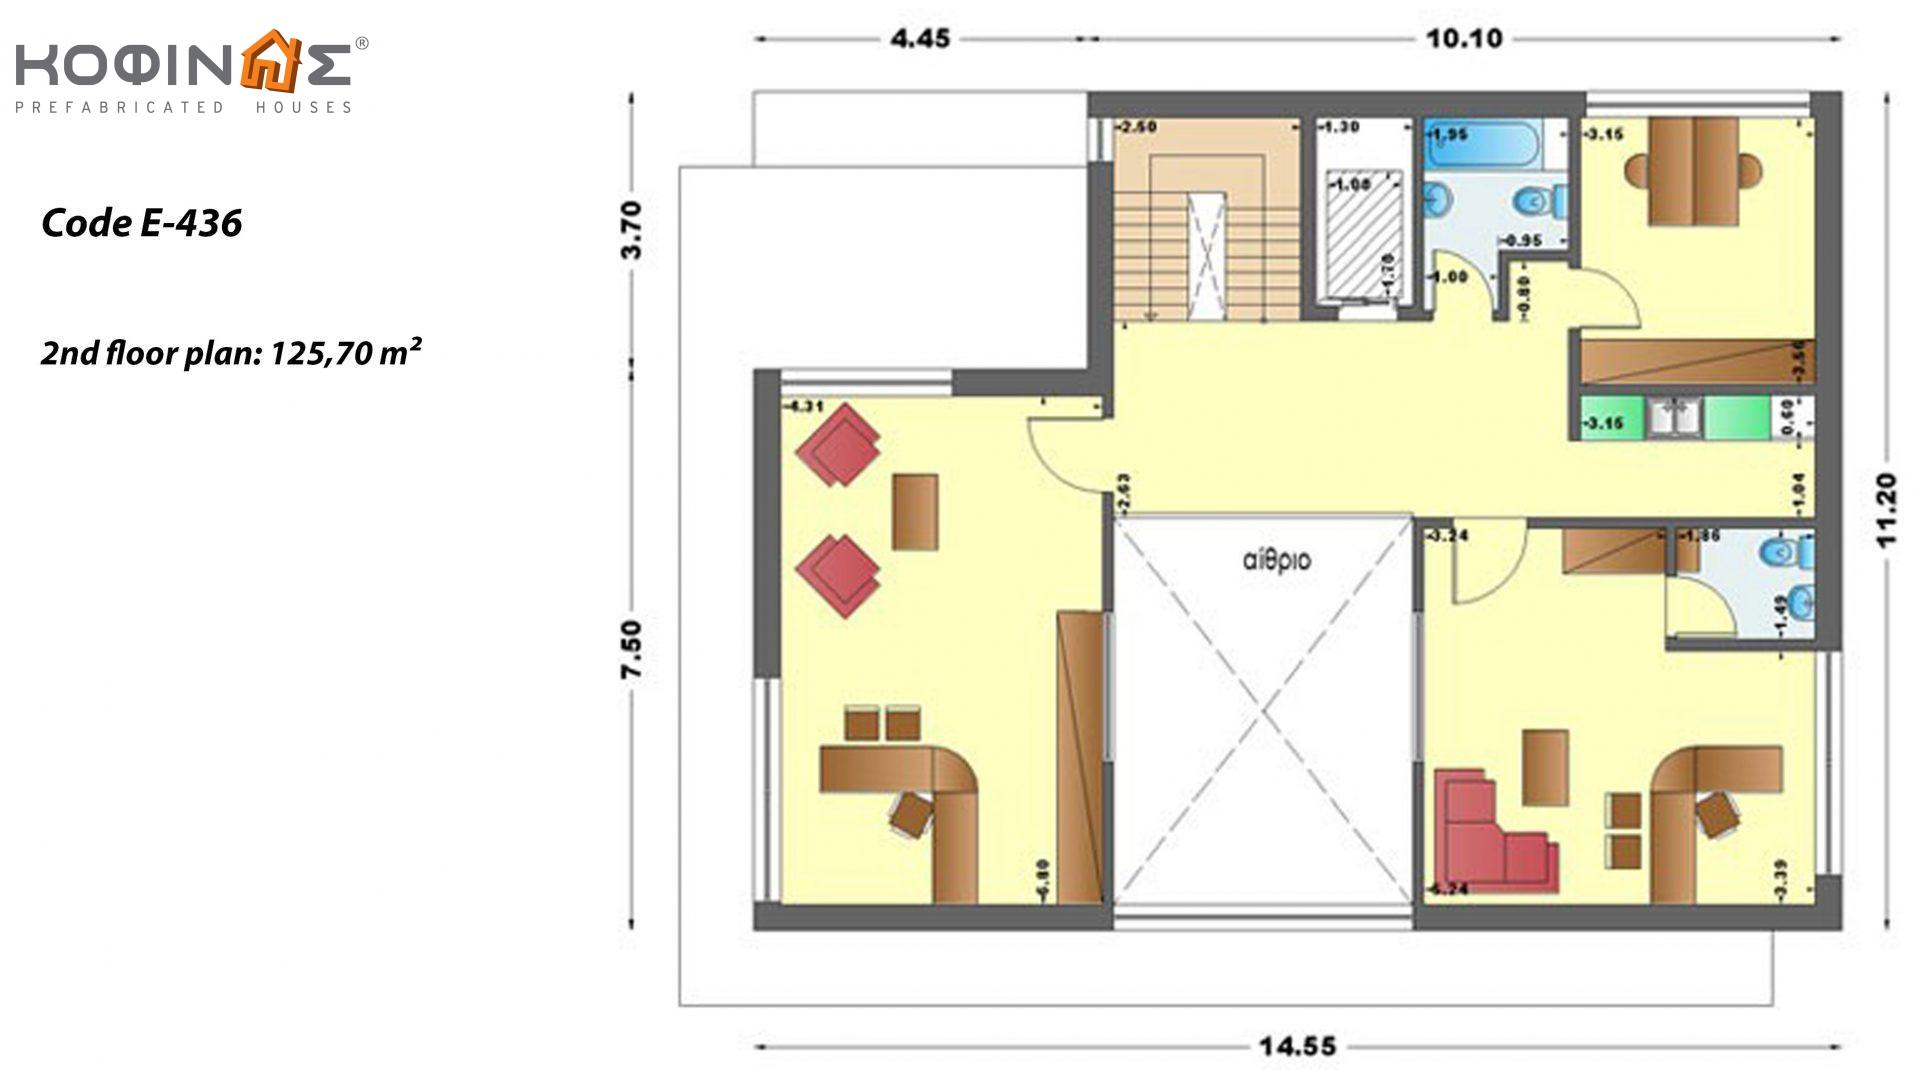 3-story office building with attrium E-436, total space of 436,30 m²,roofed areas 27,98 m²